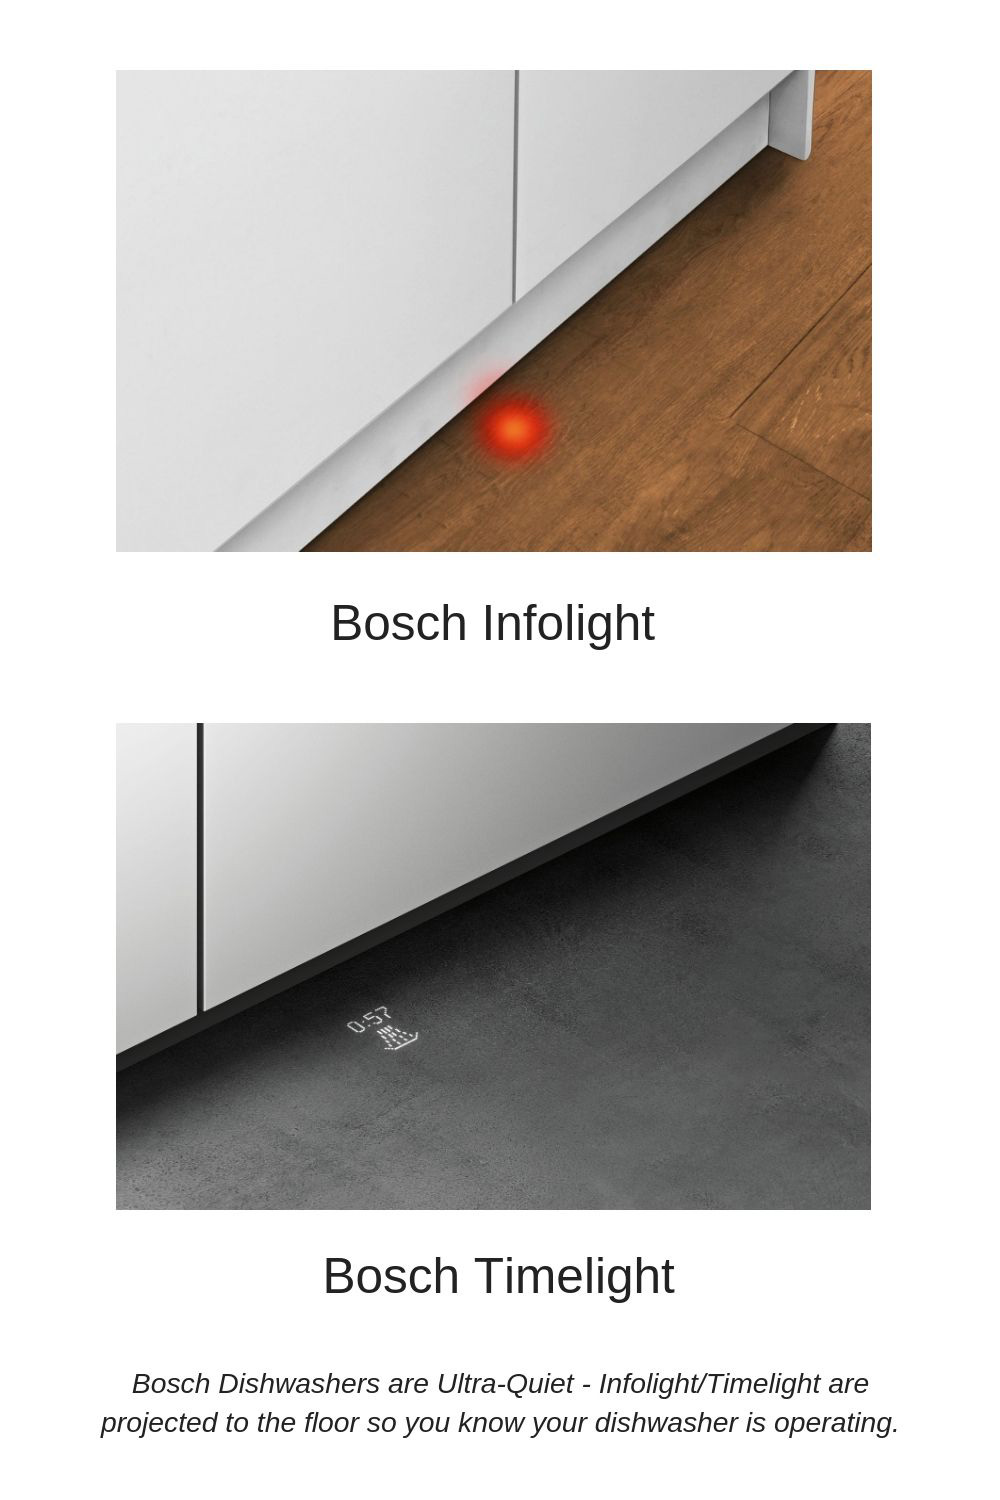 Bosch-Dishwasher-Timelight-and-Infolight